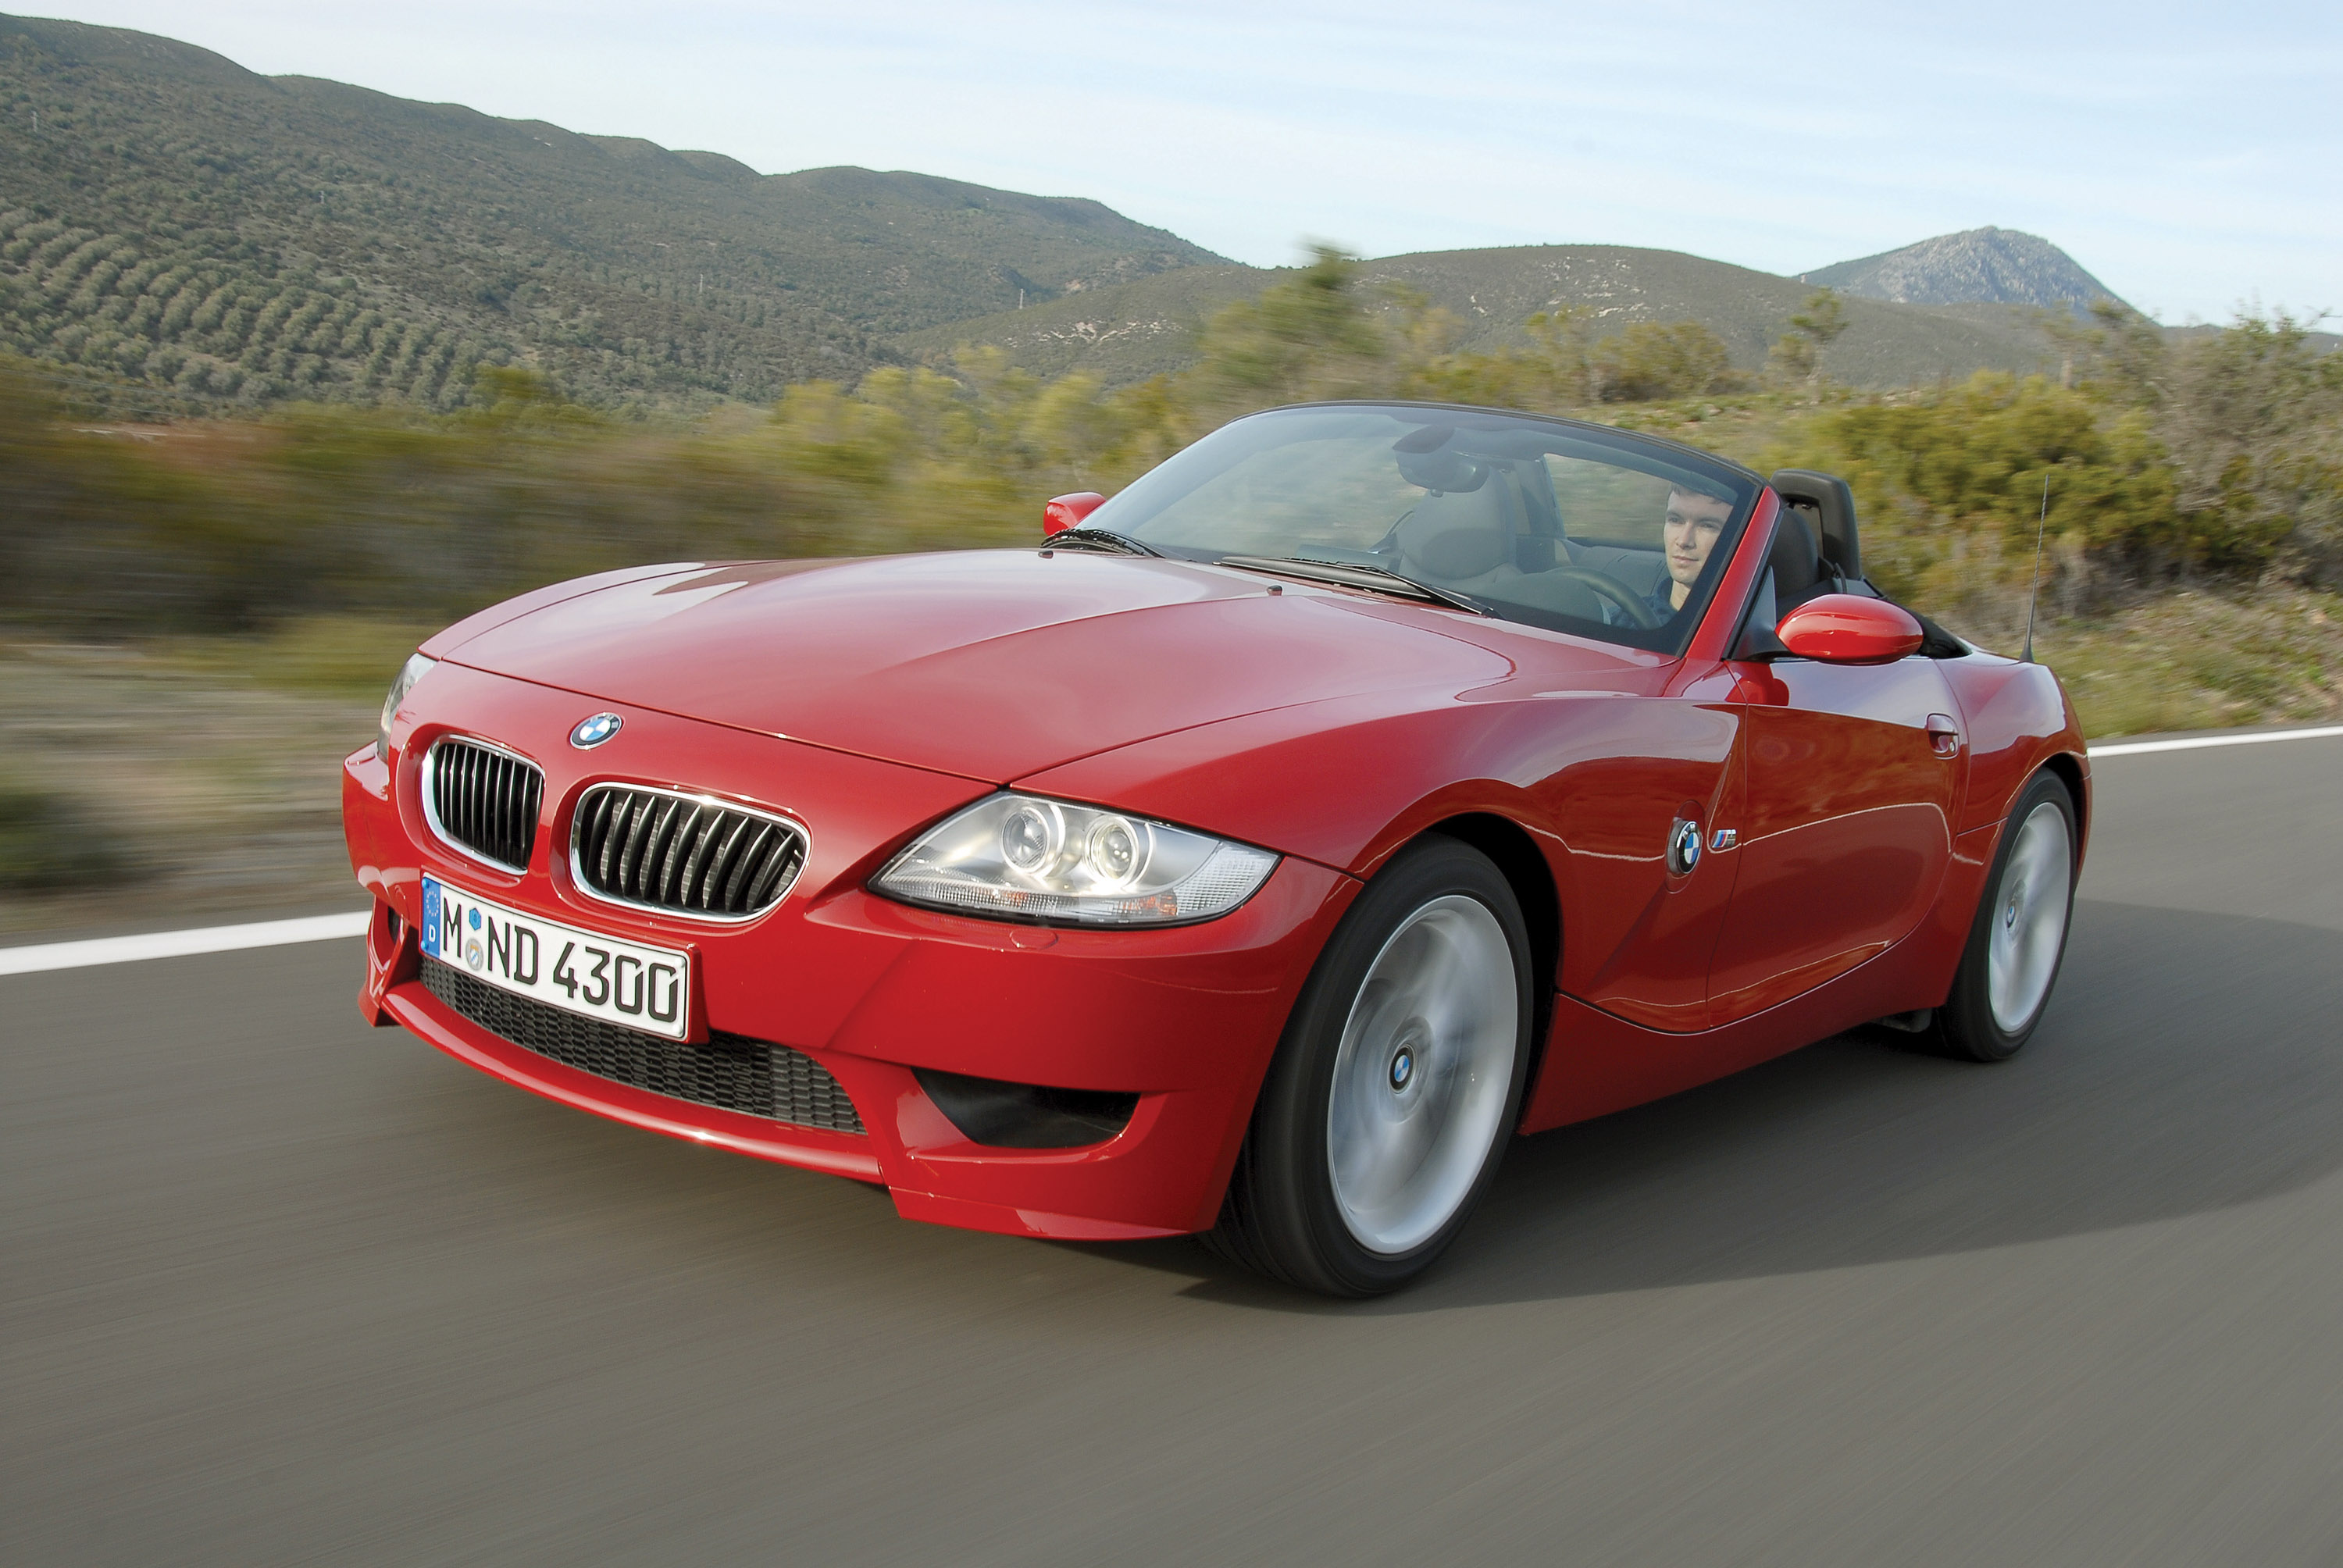 2005 BMW Z4 Roadster - Picture 21426